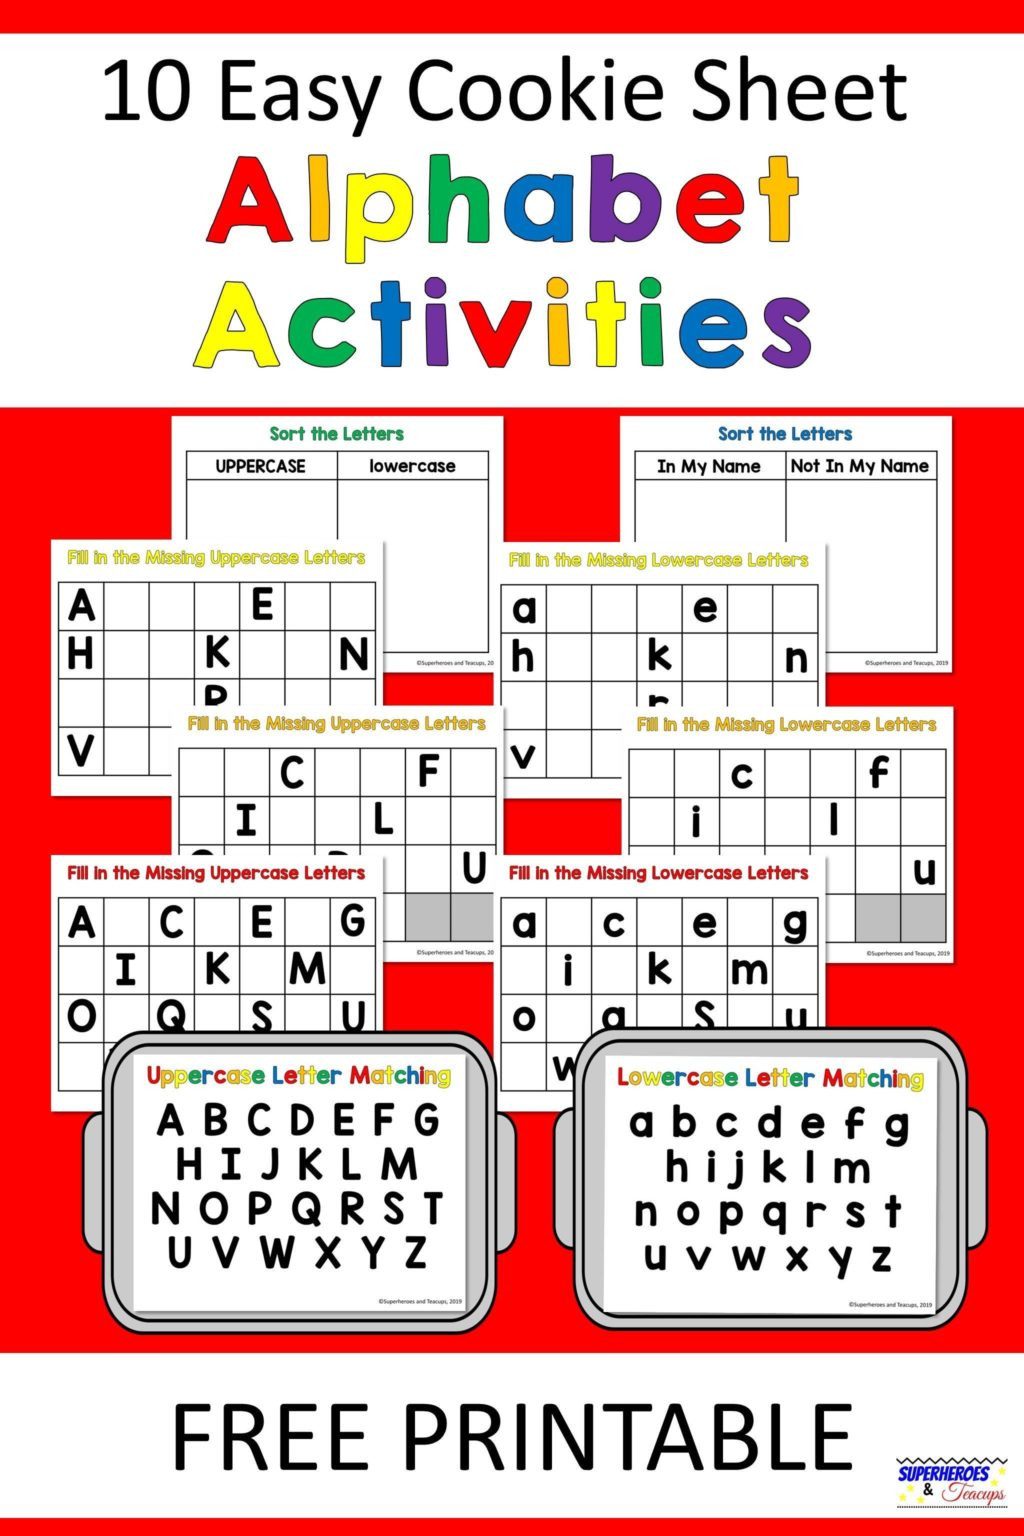 Spanish Alphabet Chart Printable Worksheet Alphabet Sheets Freentable for Preschoolers tont